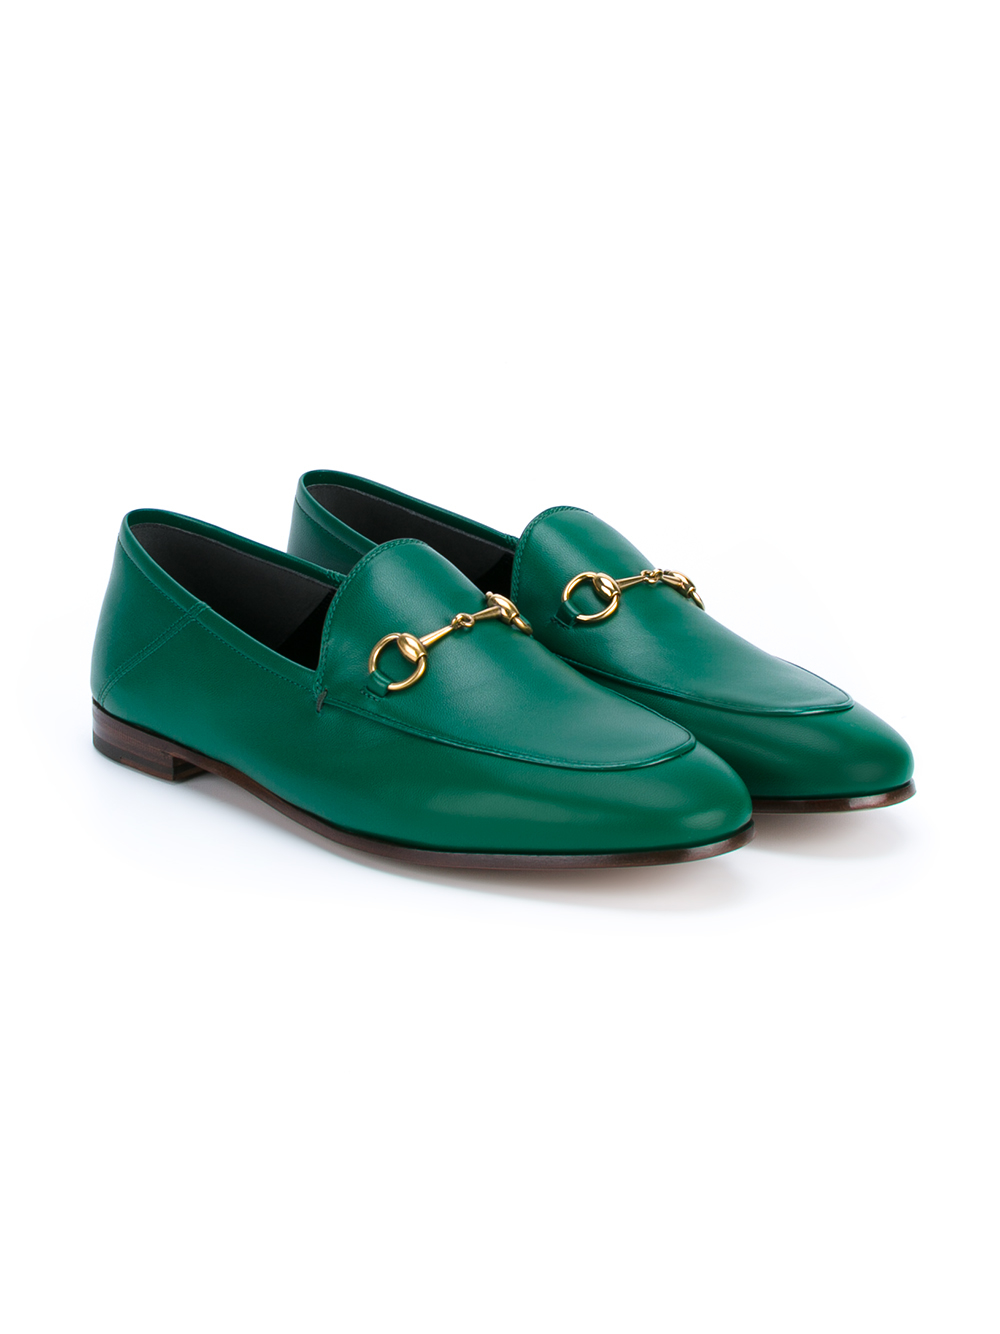 Gucci Leather Jordaan Loafers in Green